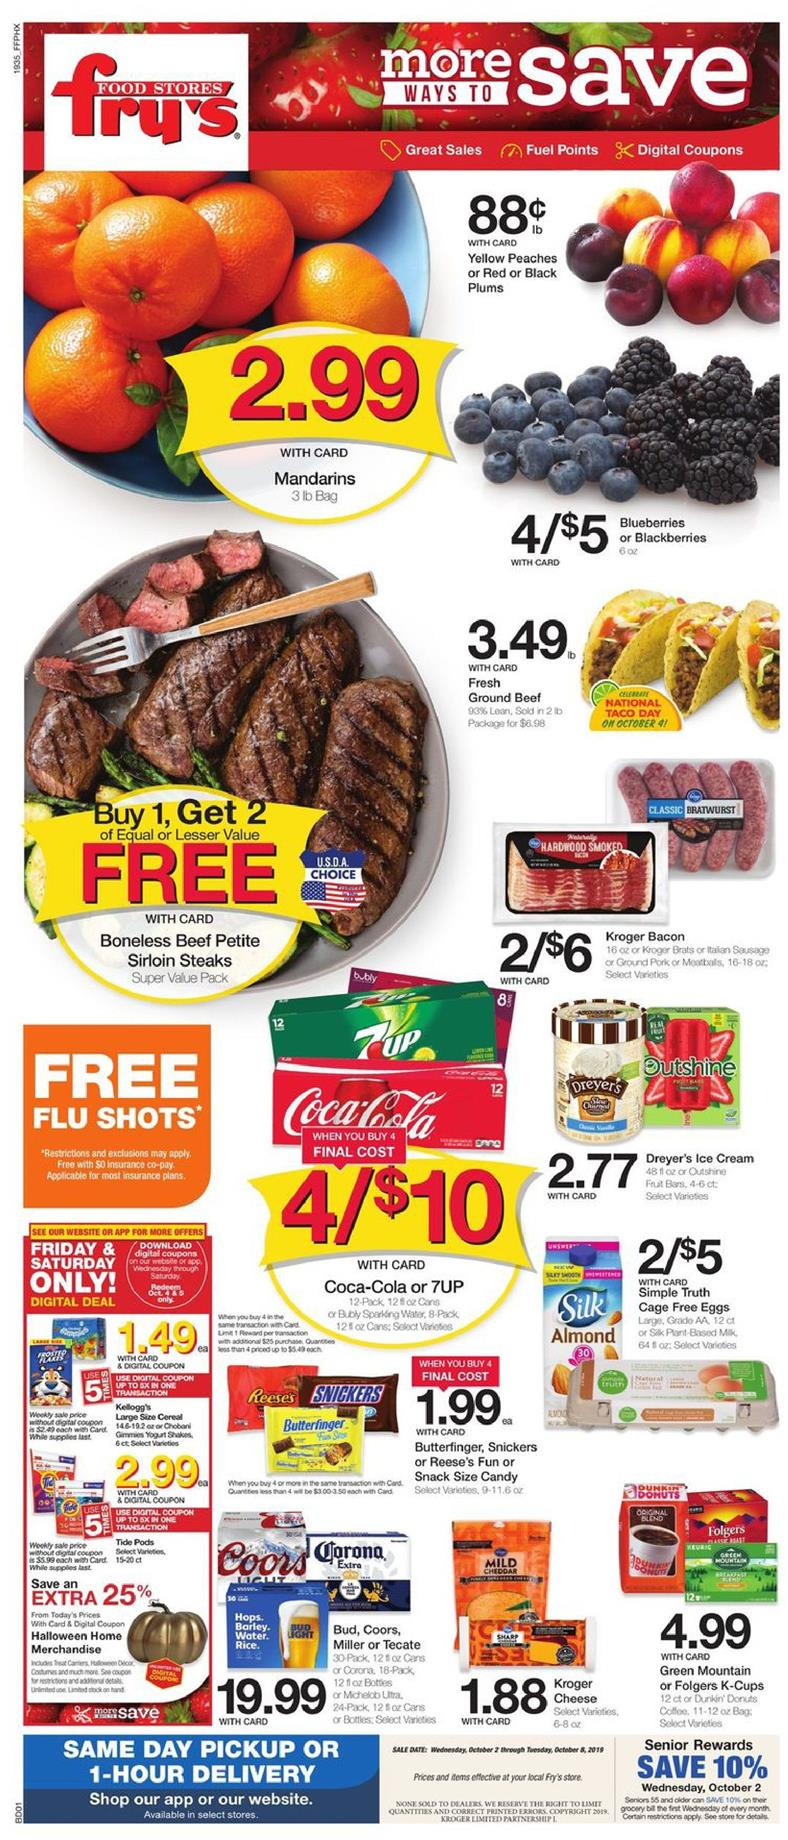 frys weekly ad oct 2 2019